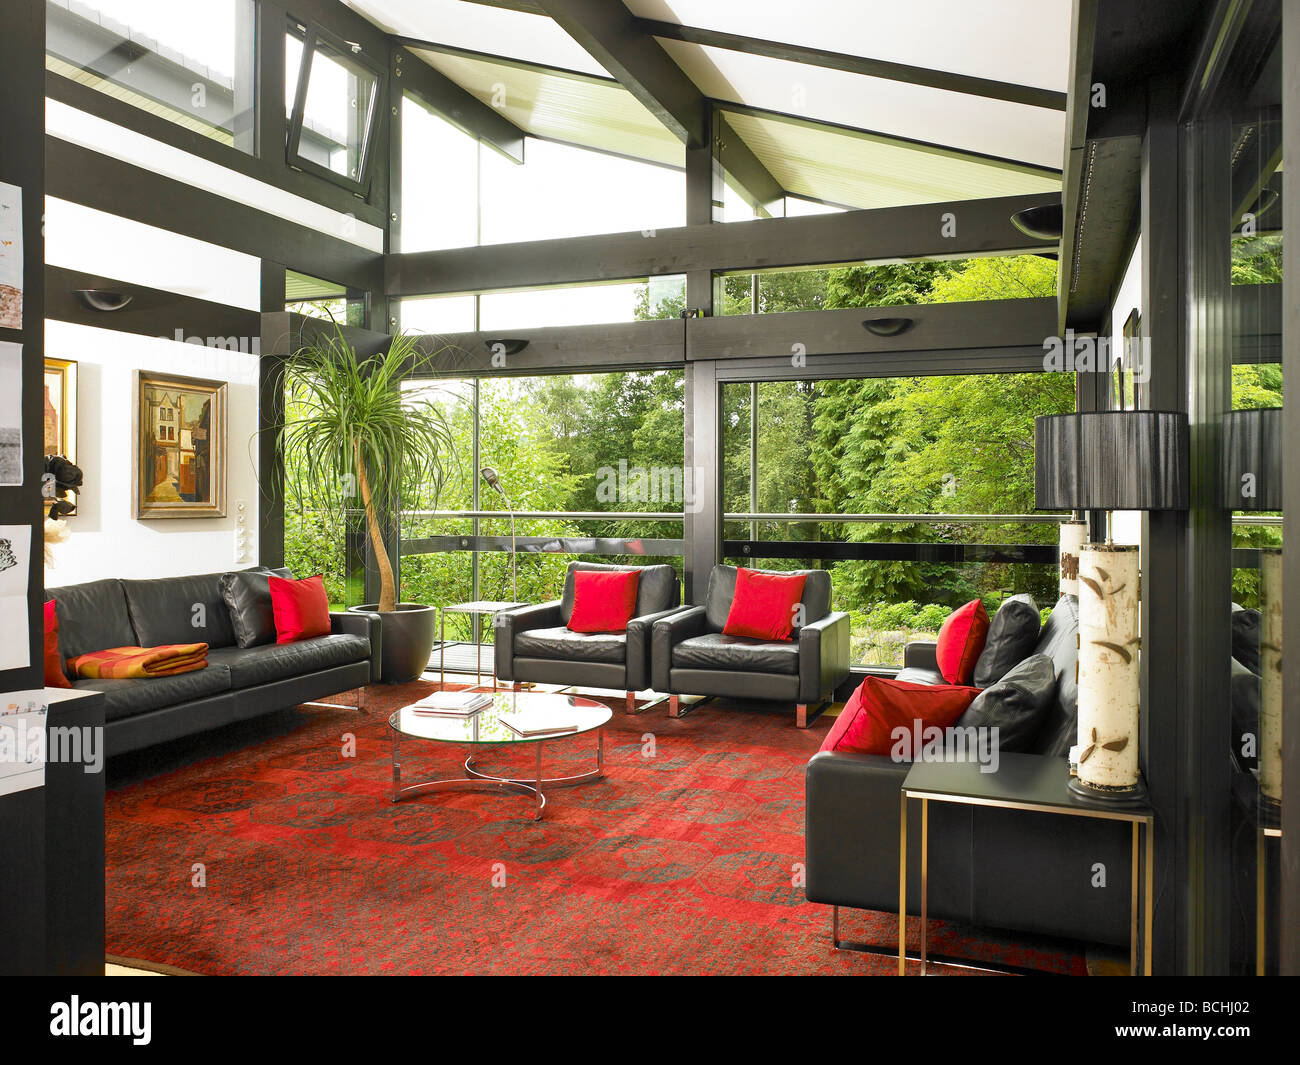 self build huf haus living room interior stock photo royalty free image 24973538 alamy. Black Bedroom Furniture Sets. Home Design Ideas